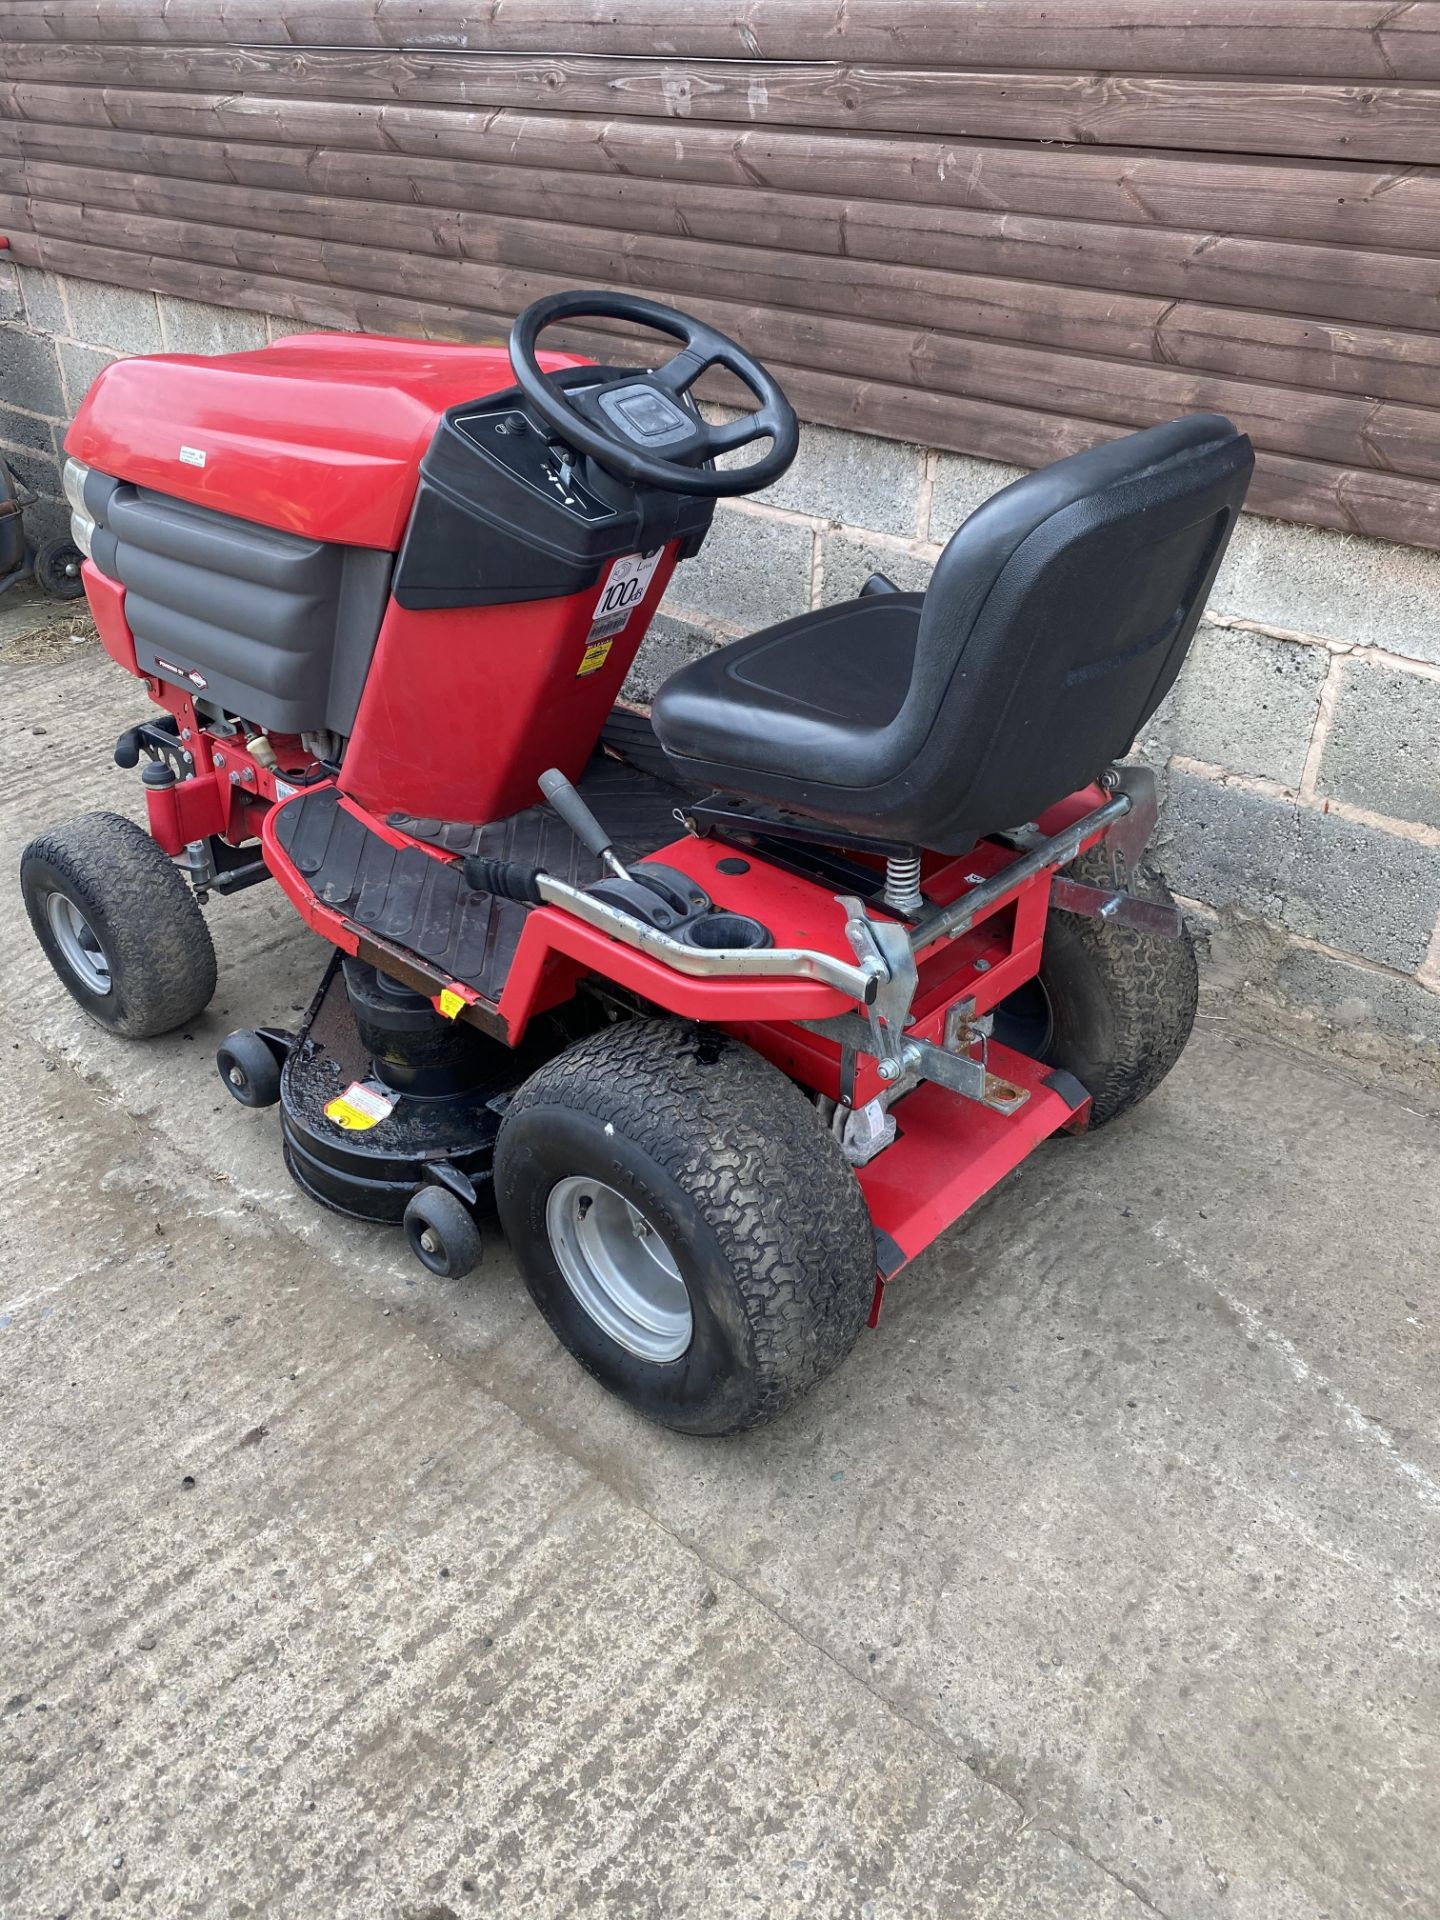 WESTWOOD S1500 RIDE ON LAWN MOWER, STARTS, RUNS AND DRIVES, HYDROSTATIC DRIVE *PLUS VAT* - Image 3 of 4